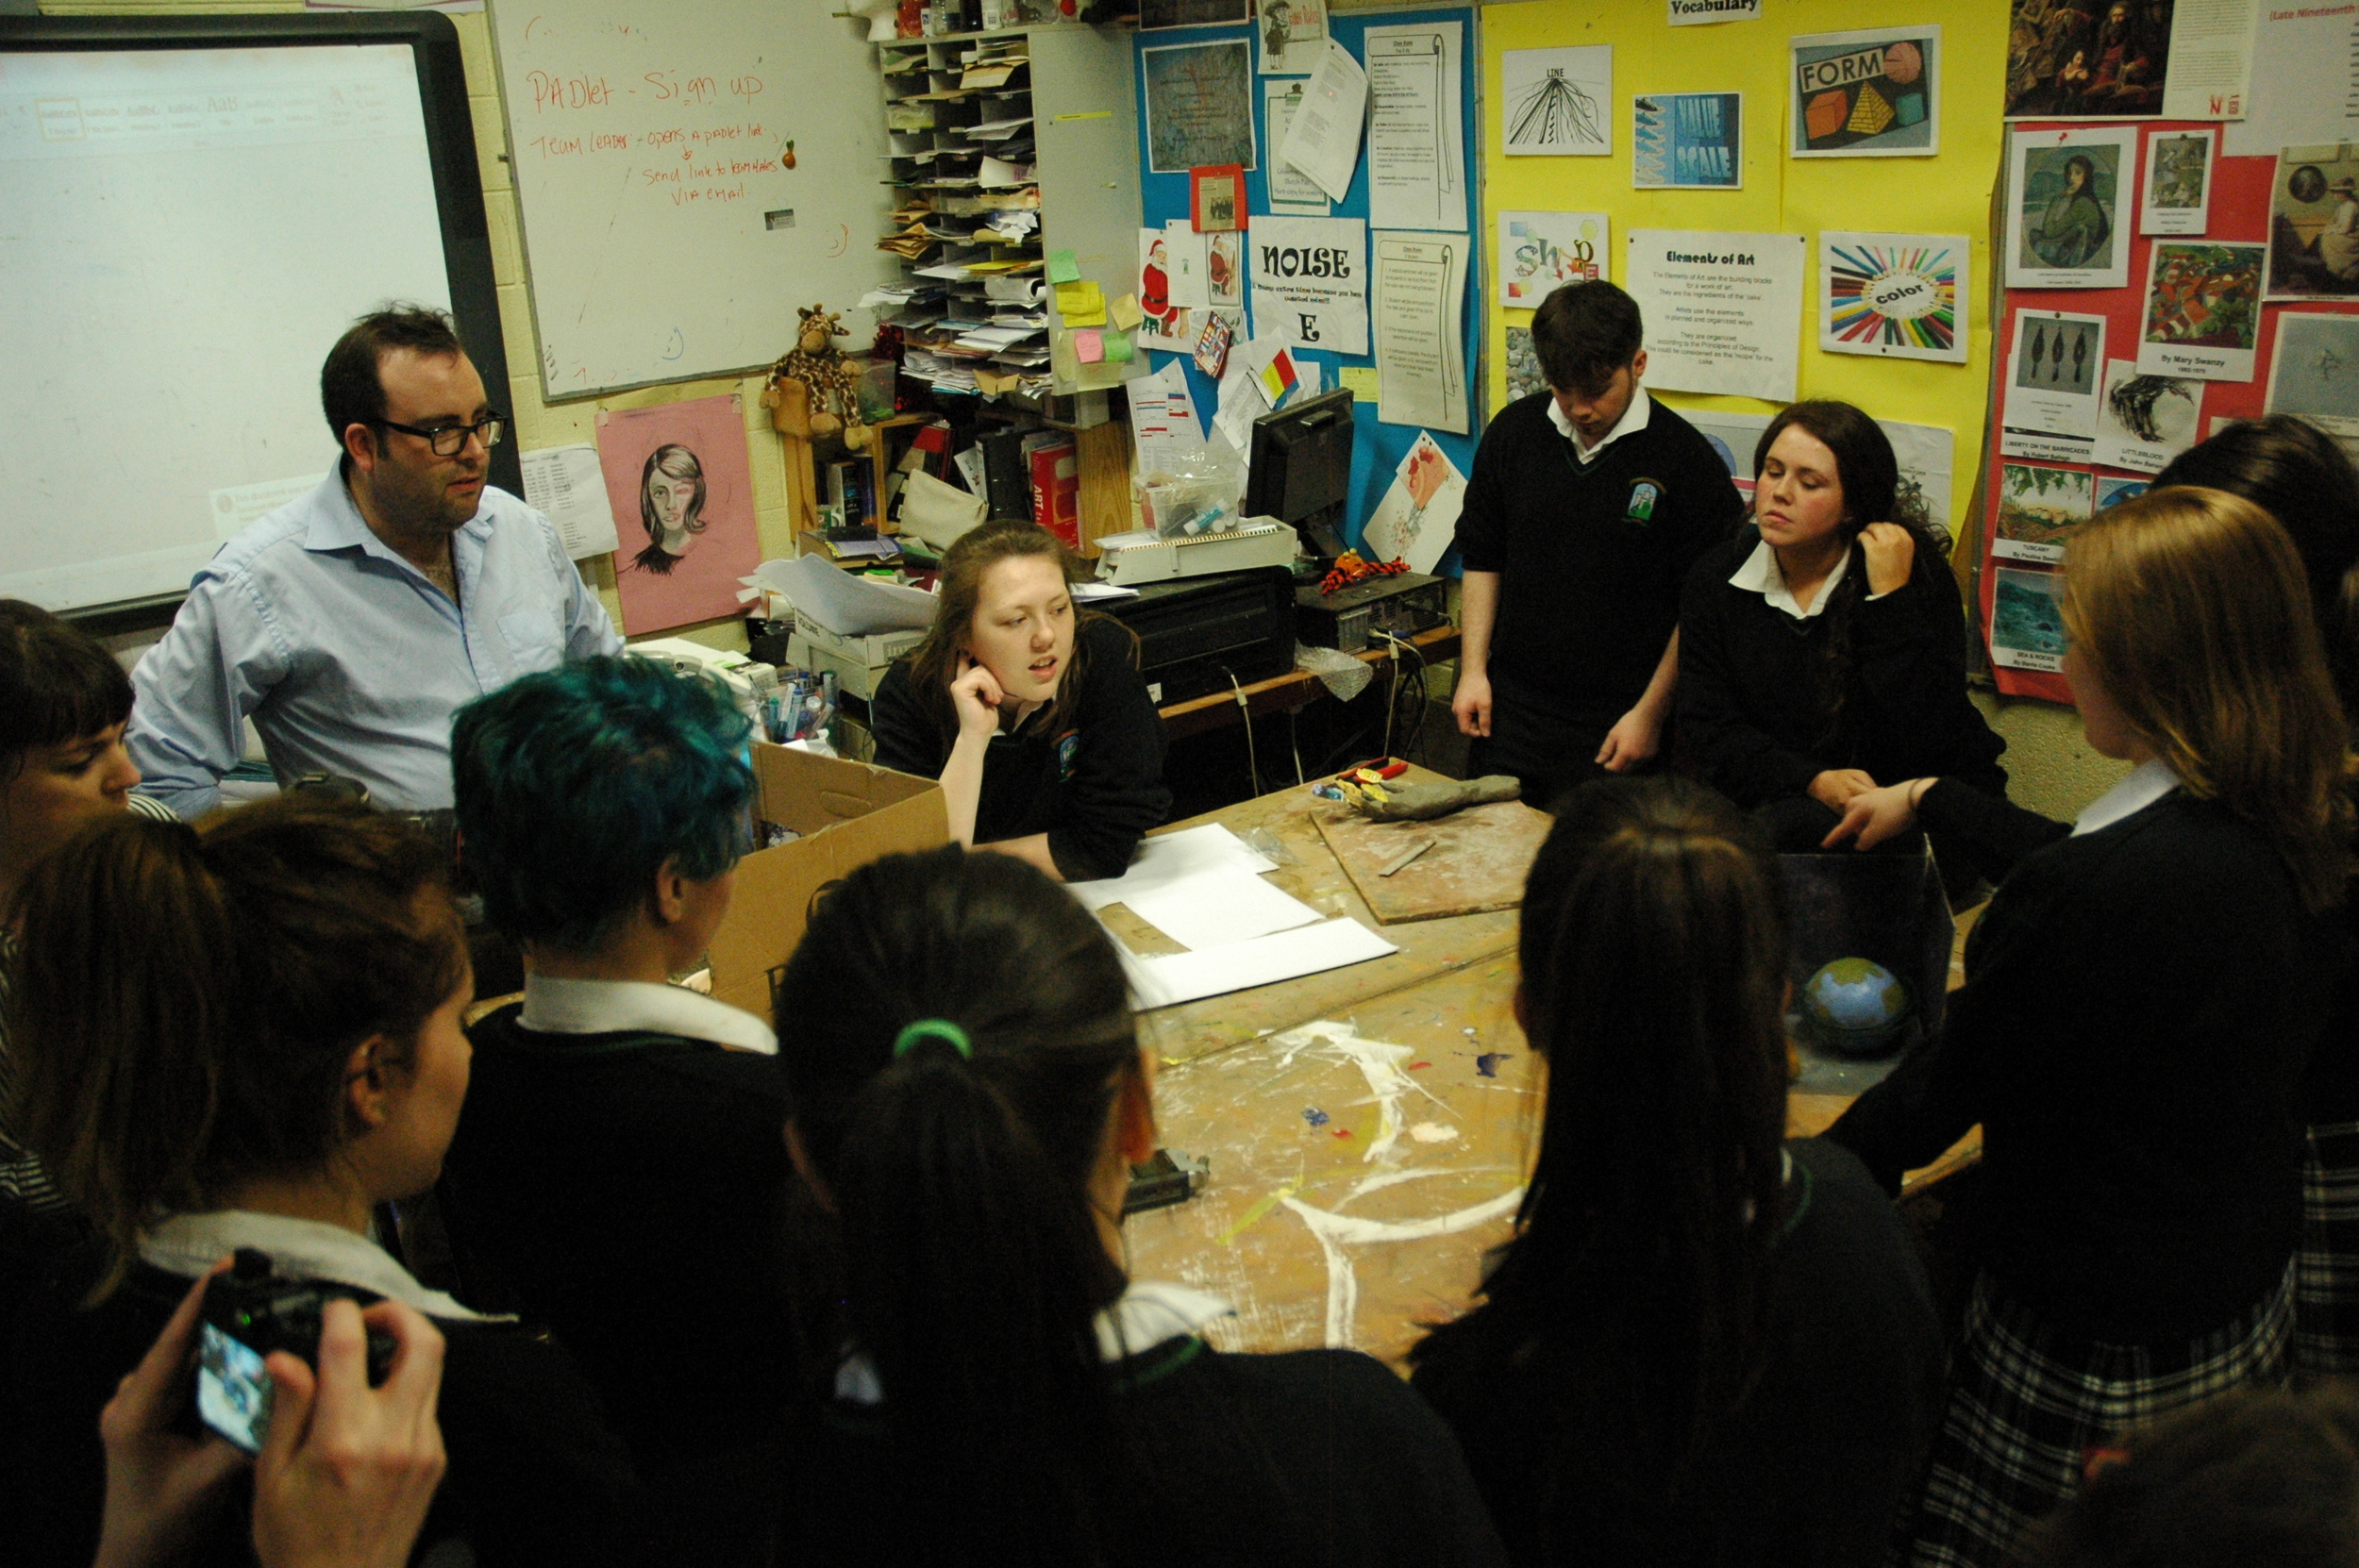 Sean gave the students the task of developing proposals for pieces of public art. He encouraged them to embrace a sense of 'devilment' in their proposals.